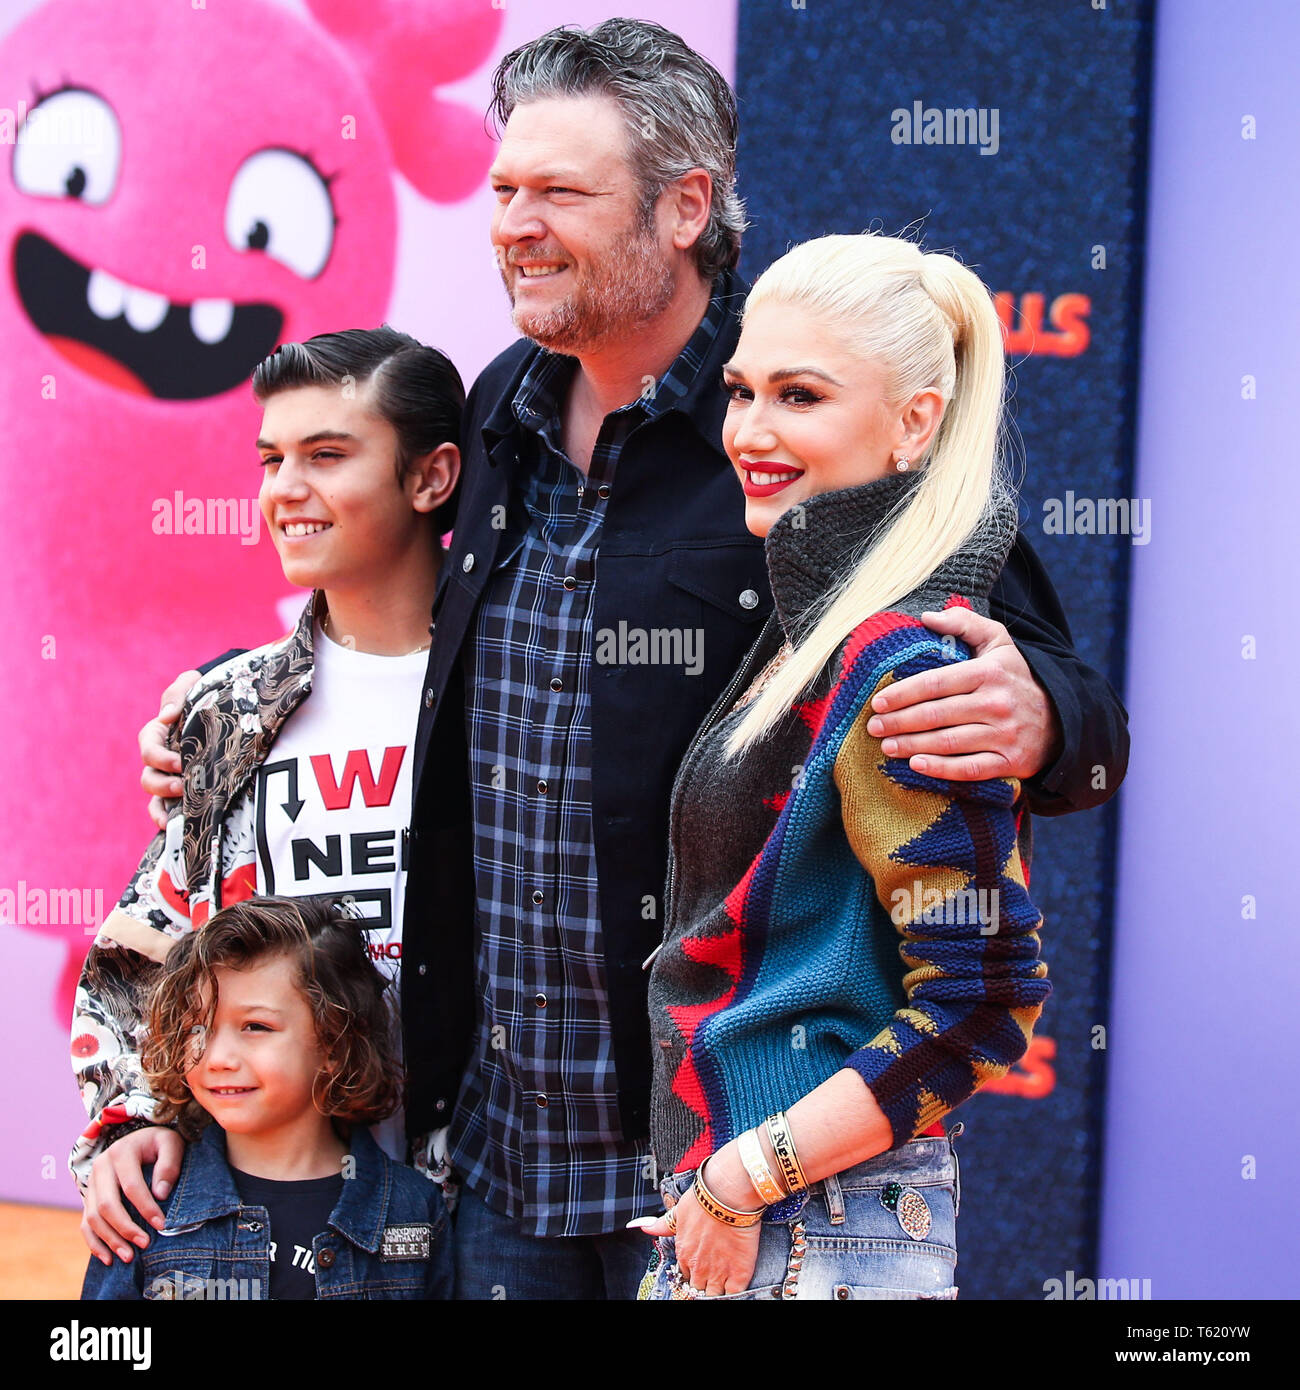 los angeles california usa april 27 kingston rossdale apollo bowie flynn rossdale blake shelton and gwen stefani arrive at the world premiere of stx films uglydolls held at regal cinemas l a alamy